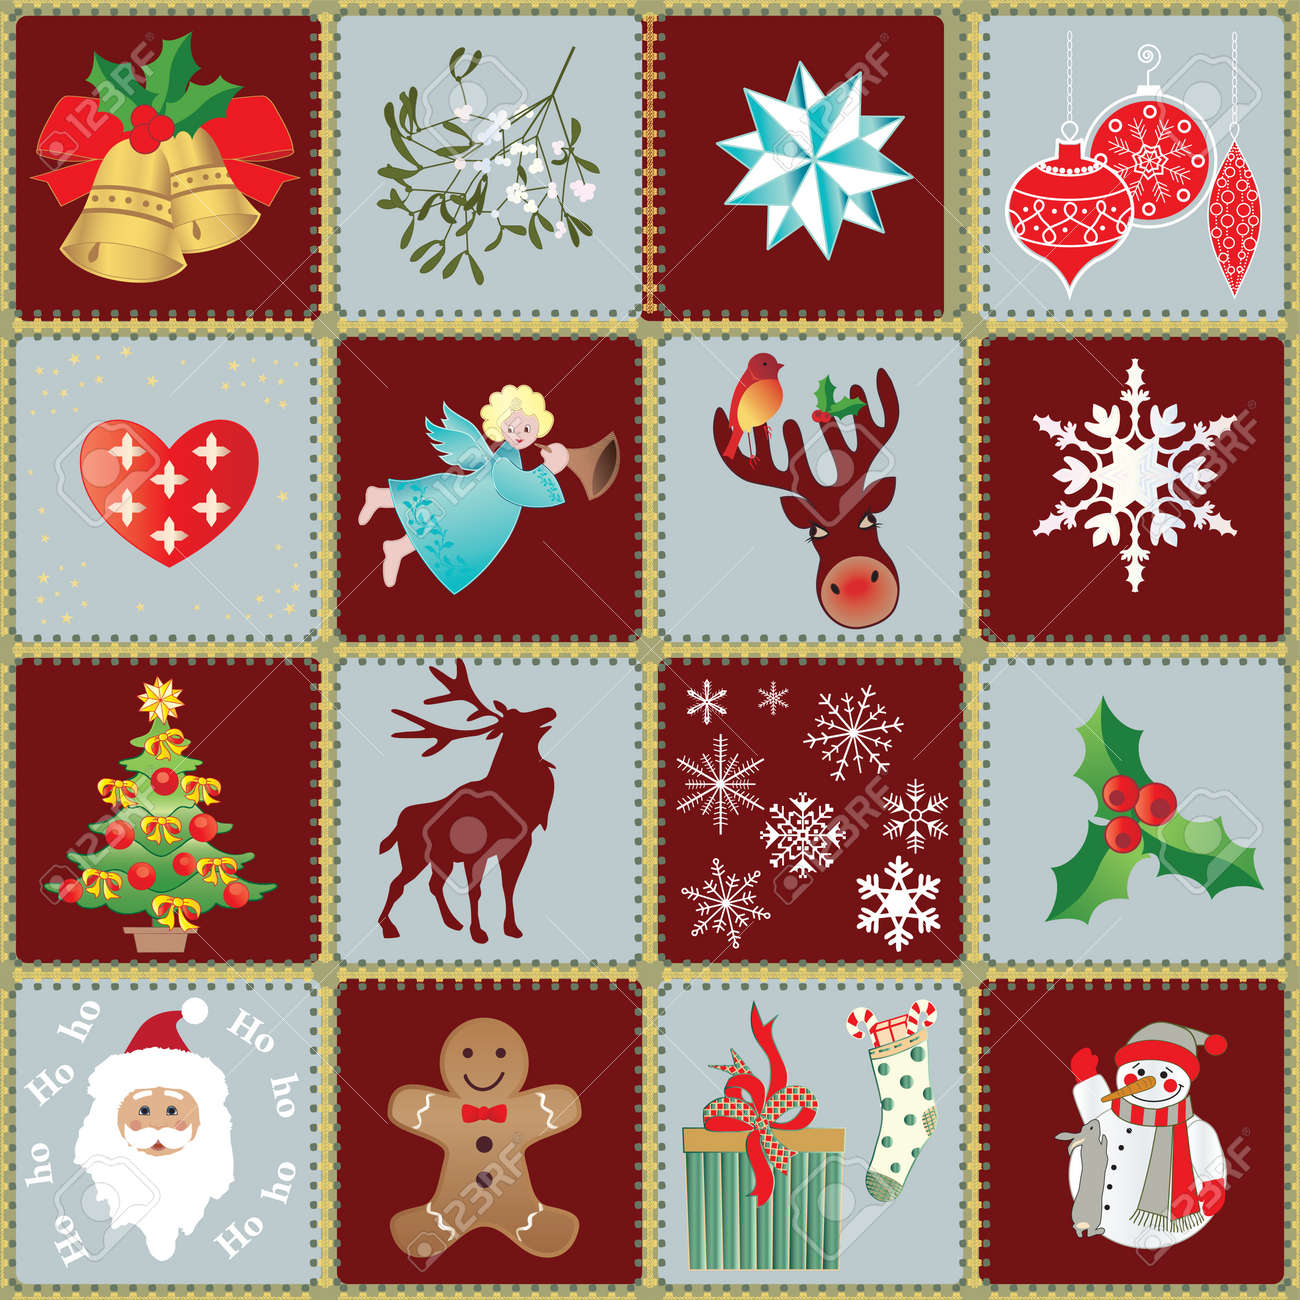 Seamless Xmas Wrapping Paper and Design Elements Stock Vector - 10663292